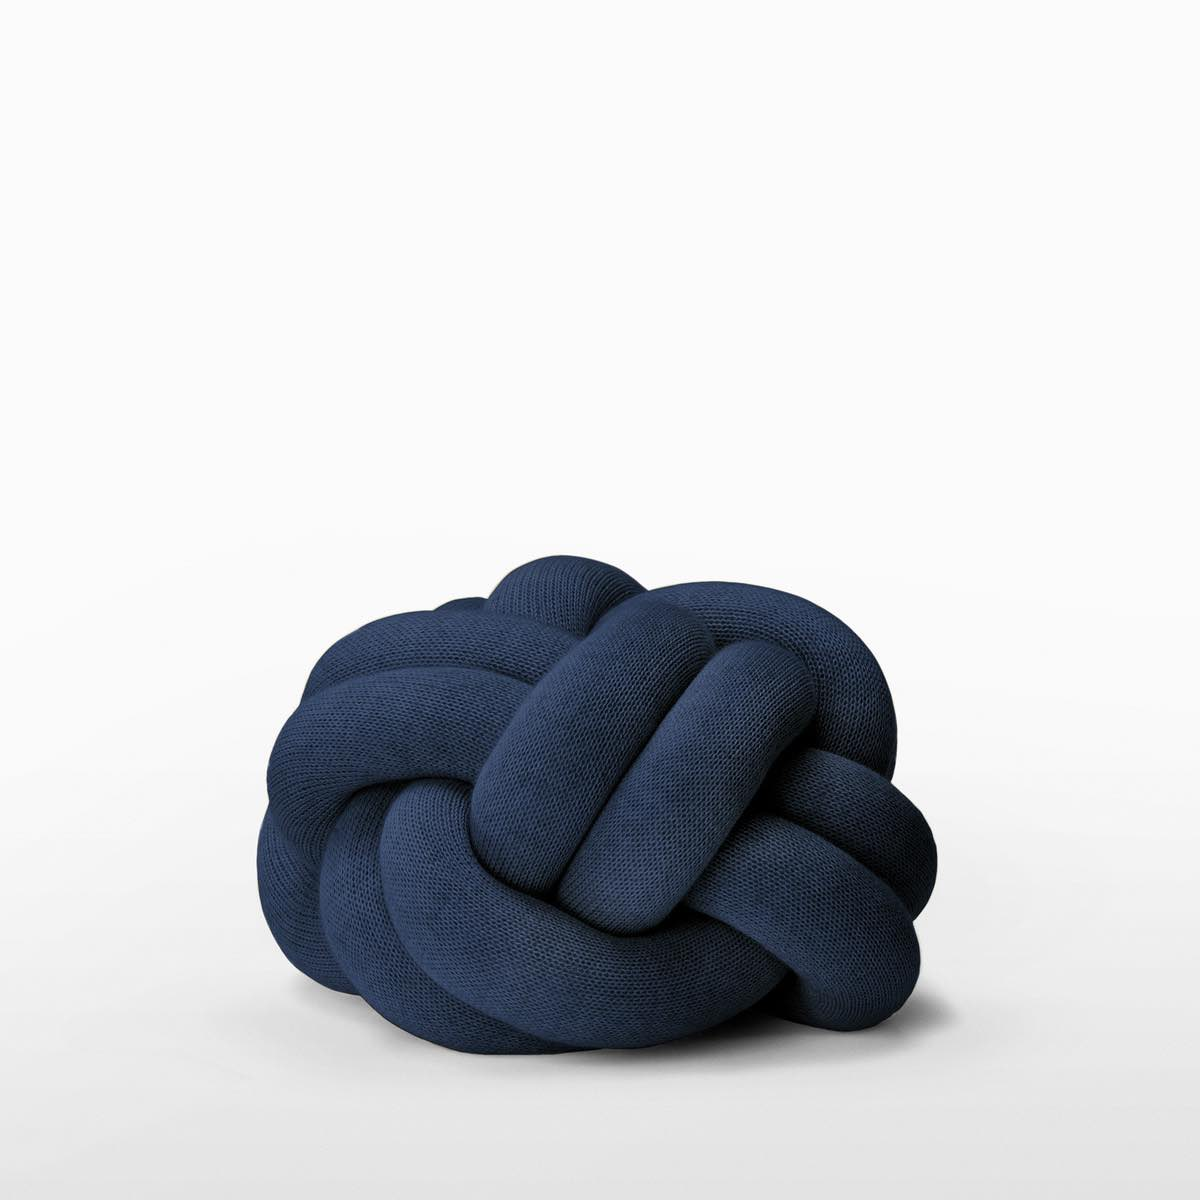 Design House Stockholm Knot Kissen